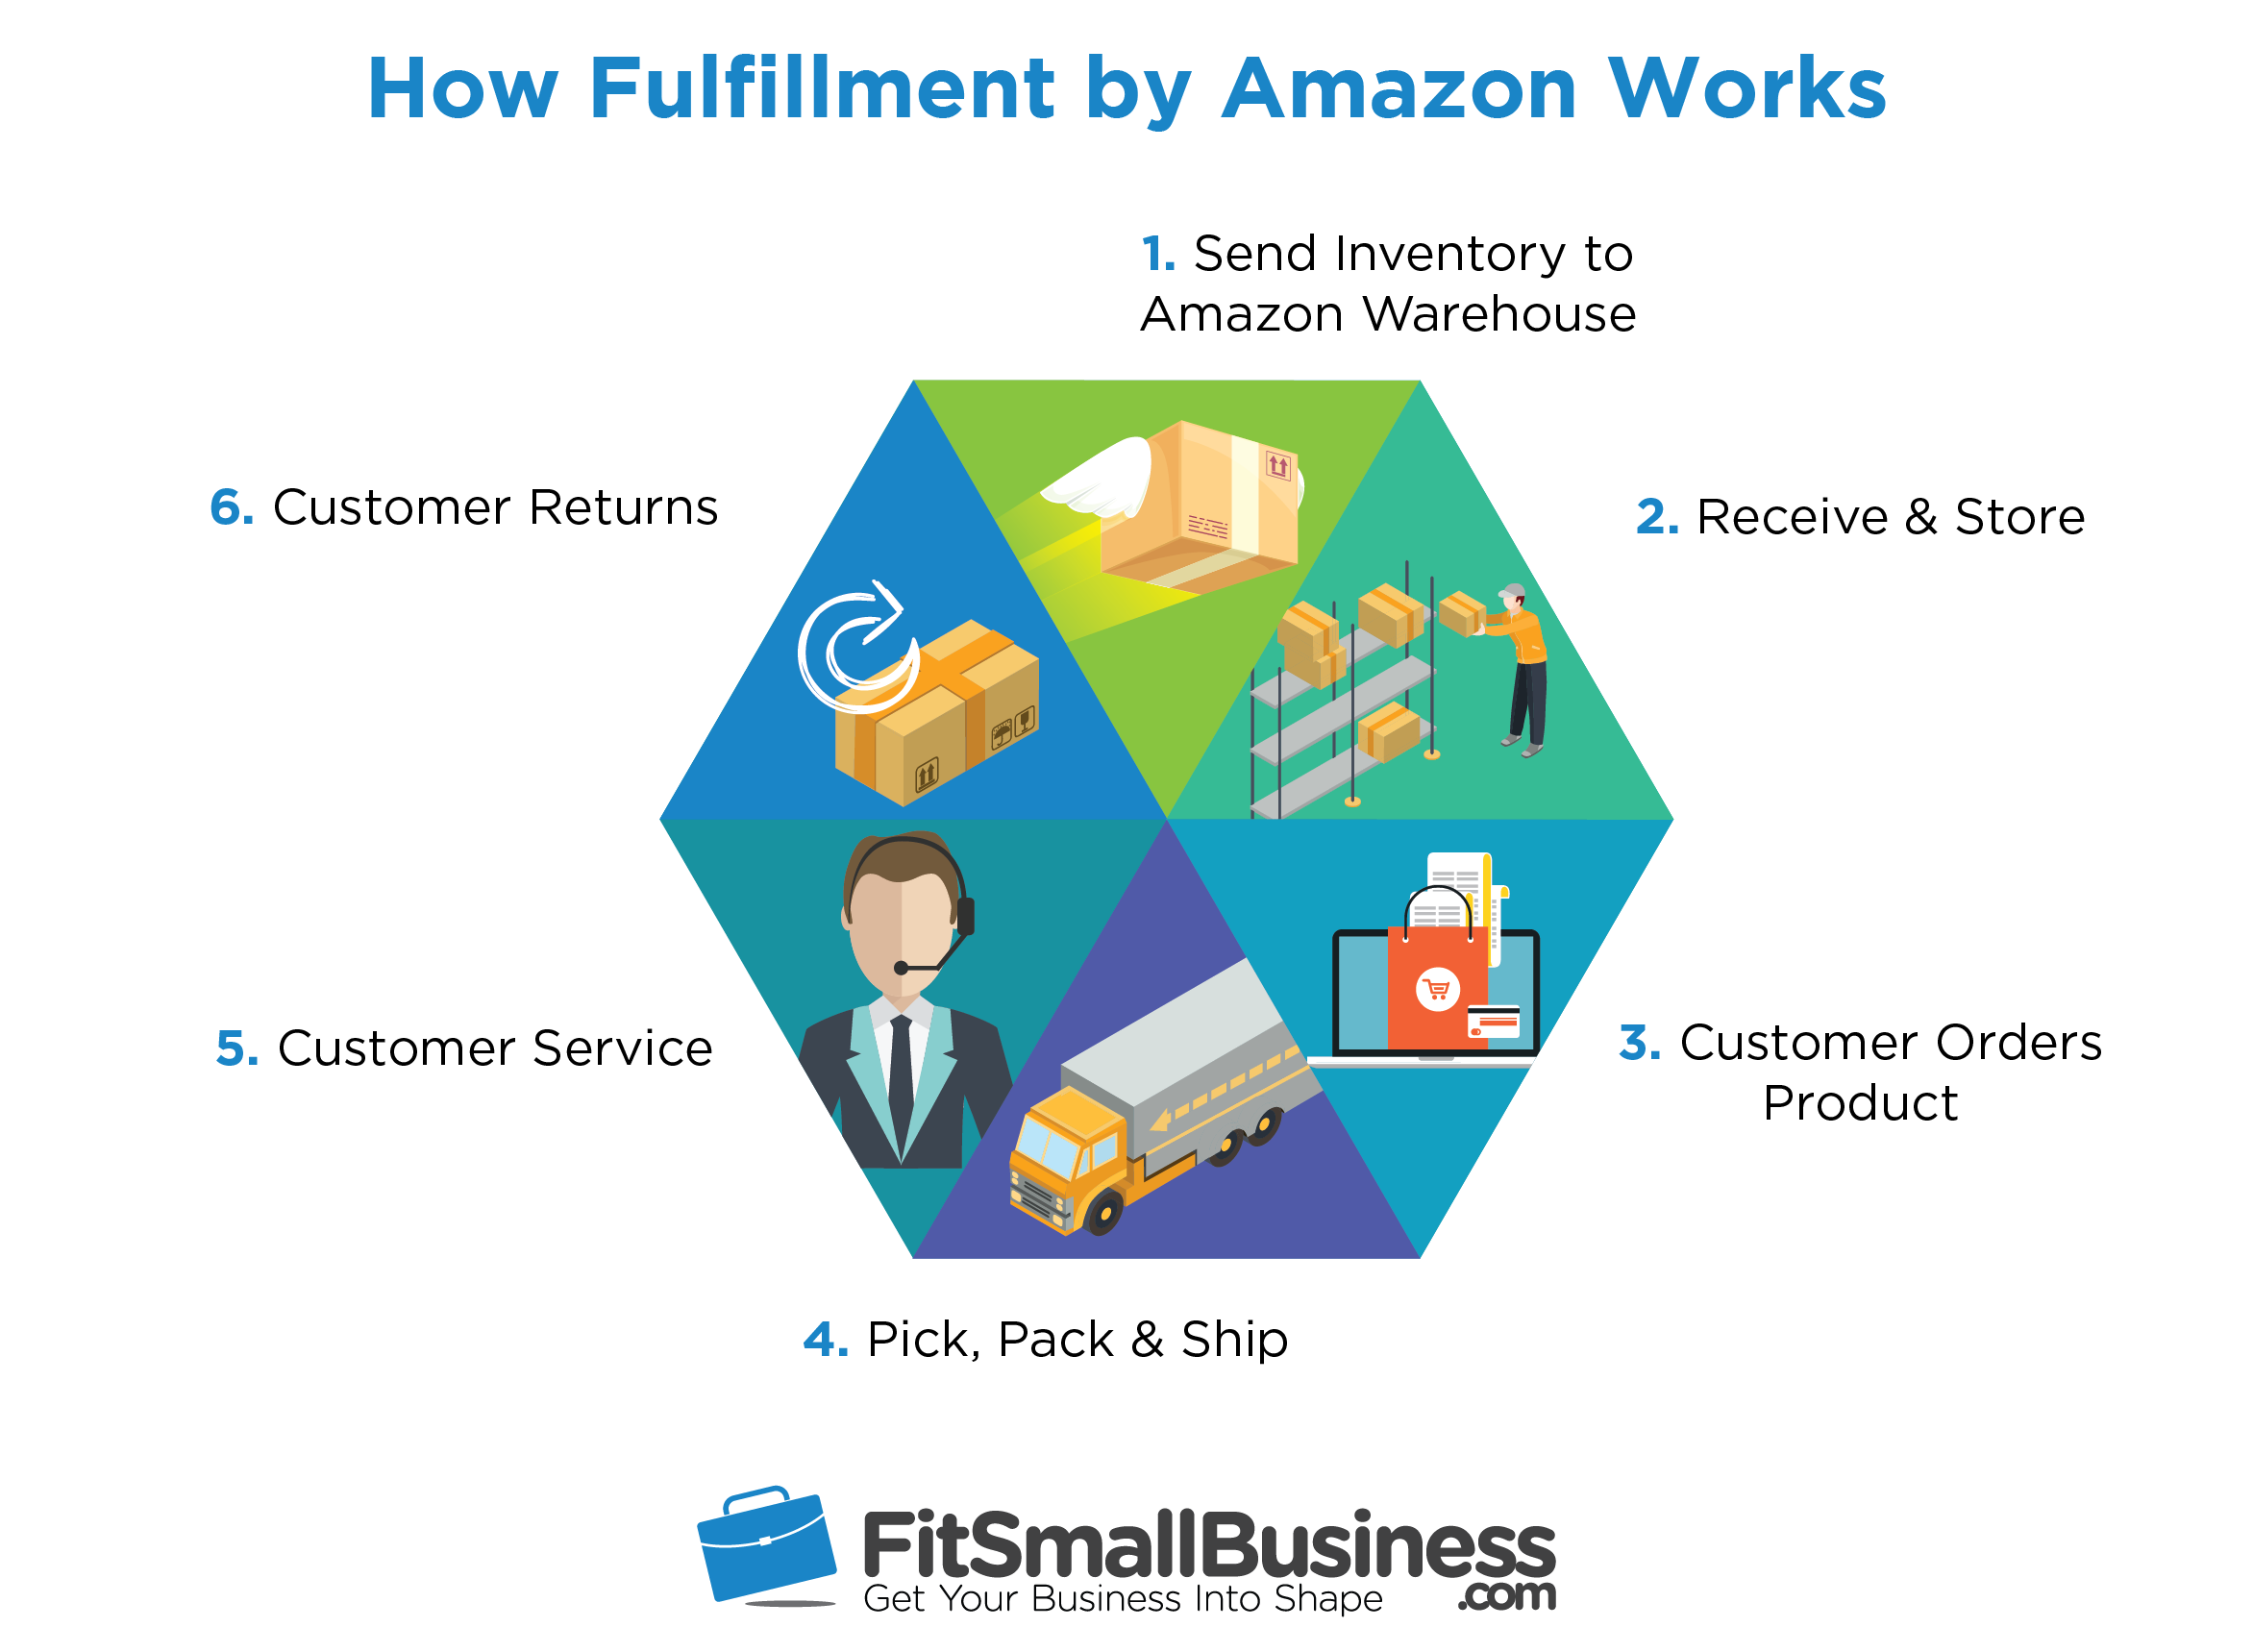 The Amazon FBA lifecycle